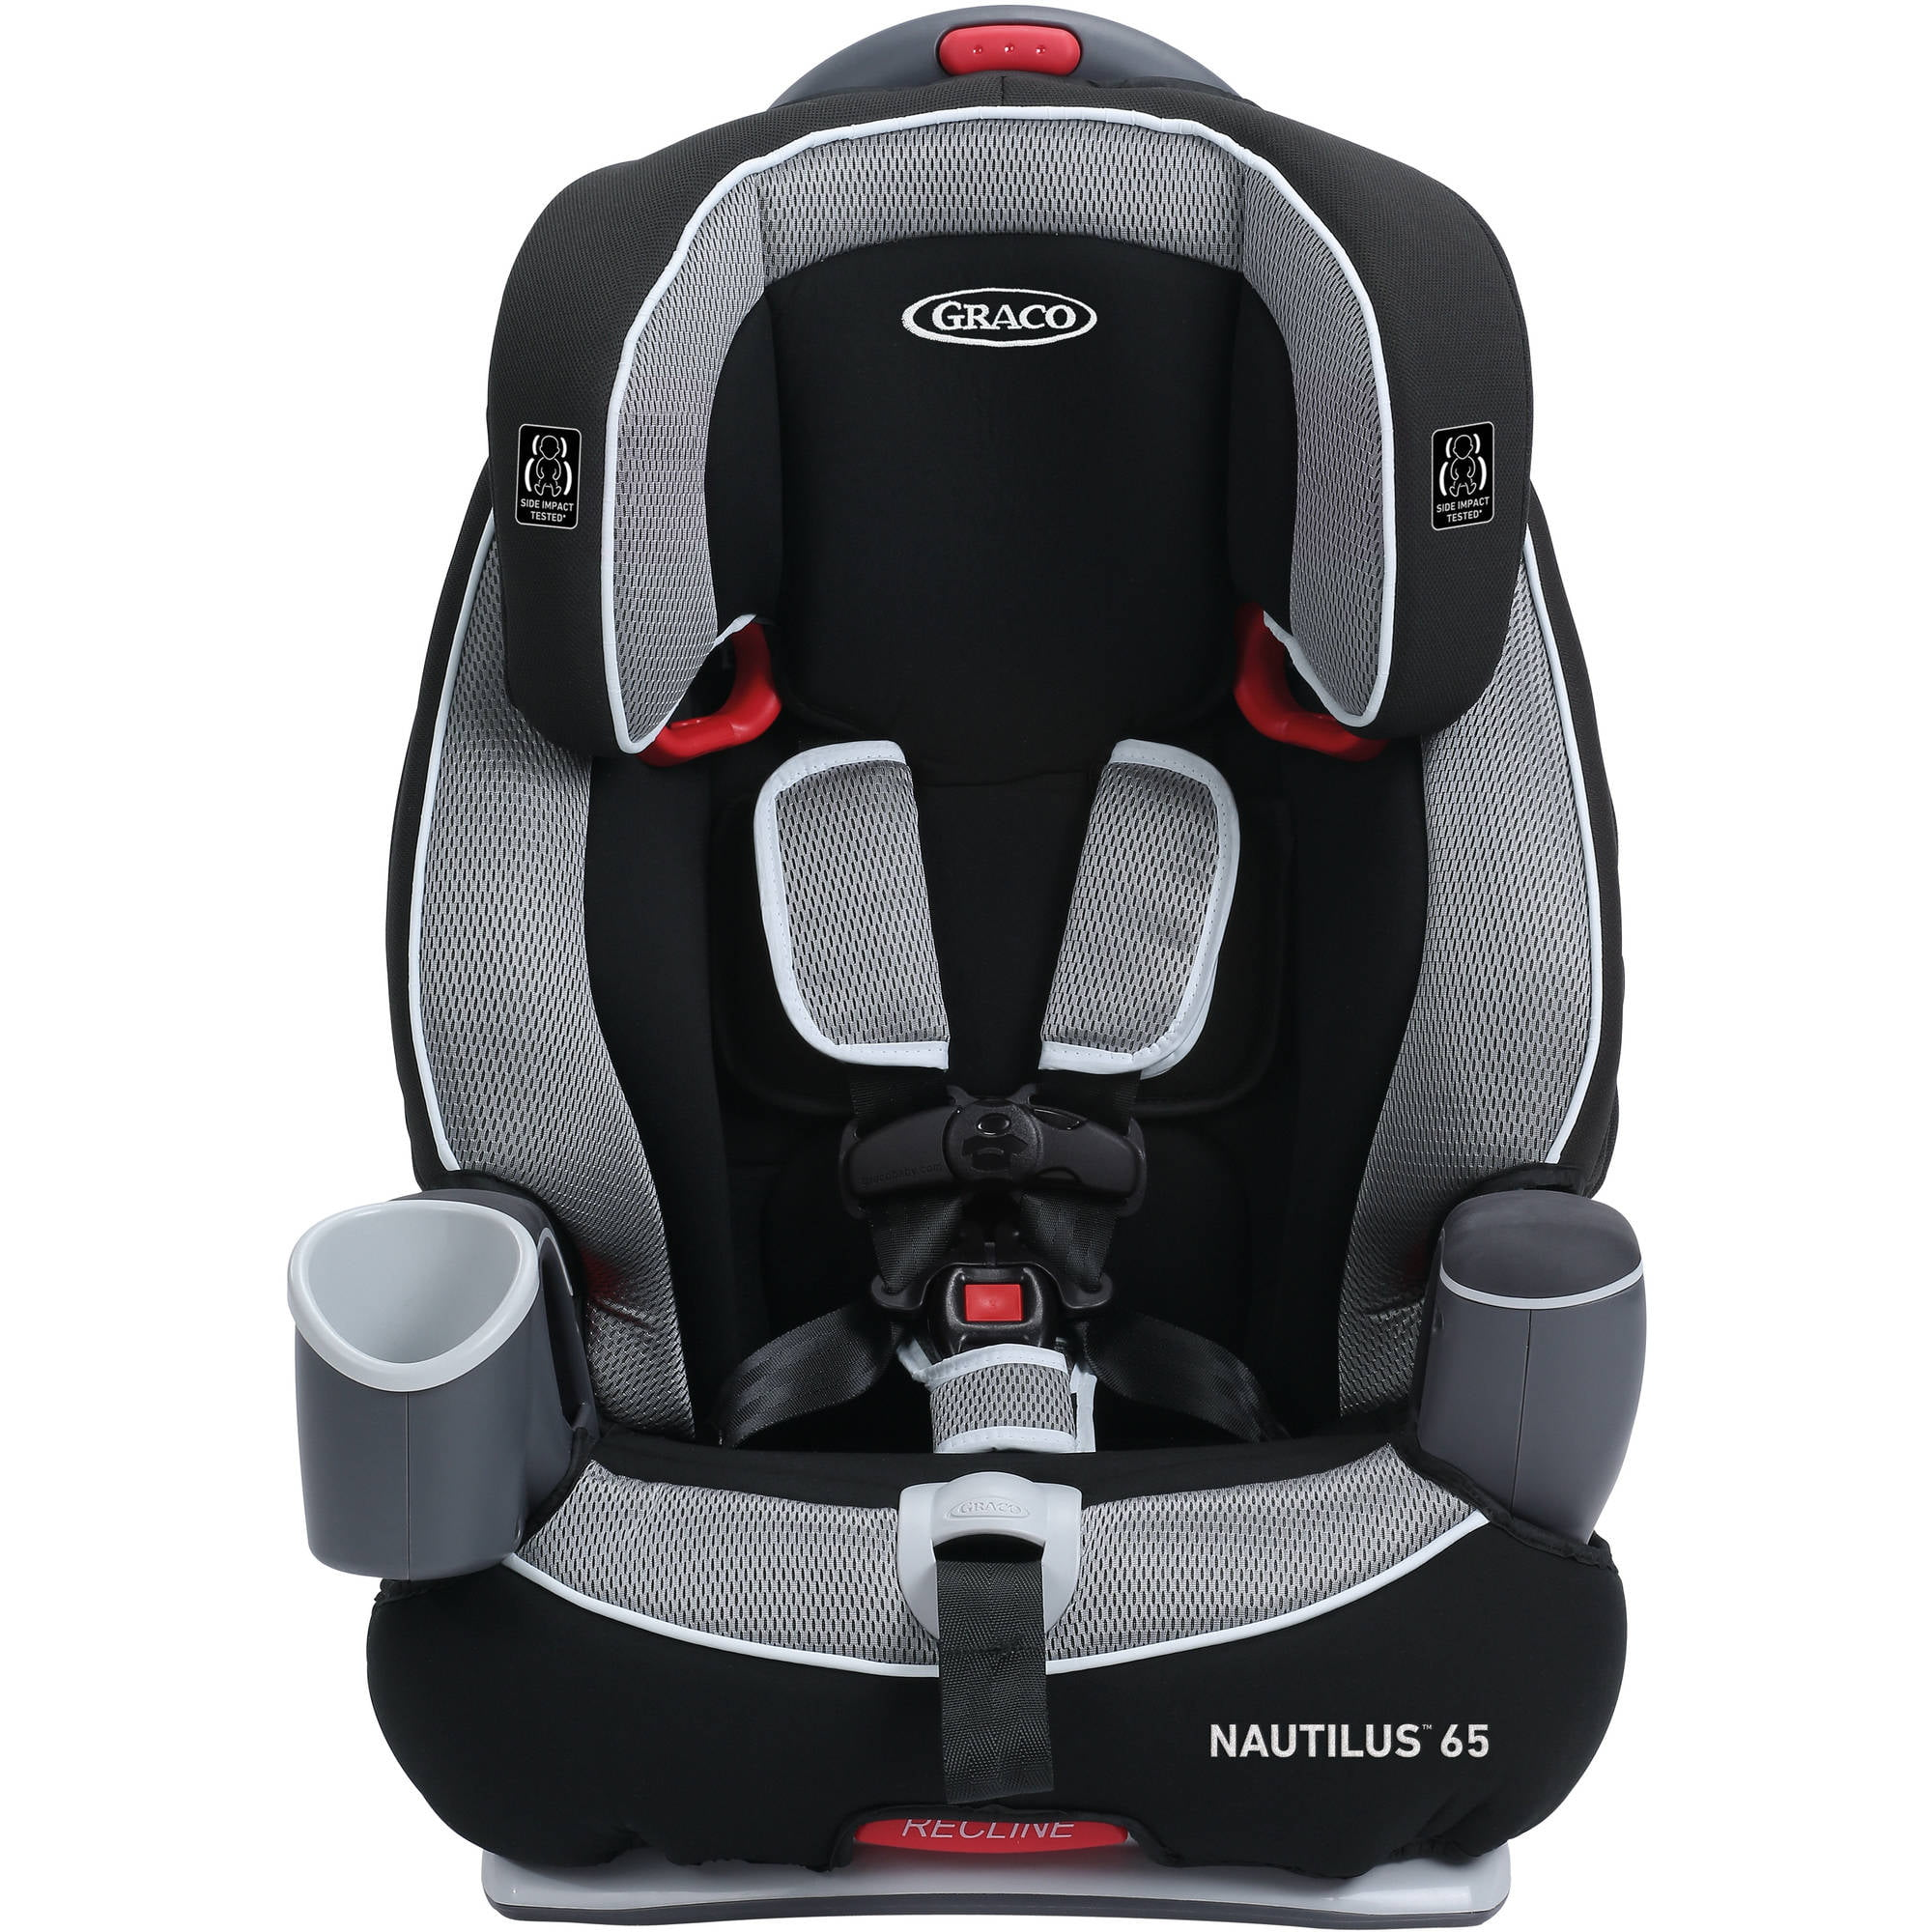 New Graco Nautilus 65 3 In 1 Multi Use 5 Point Harness Booster Car Seat Track